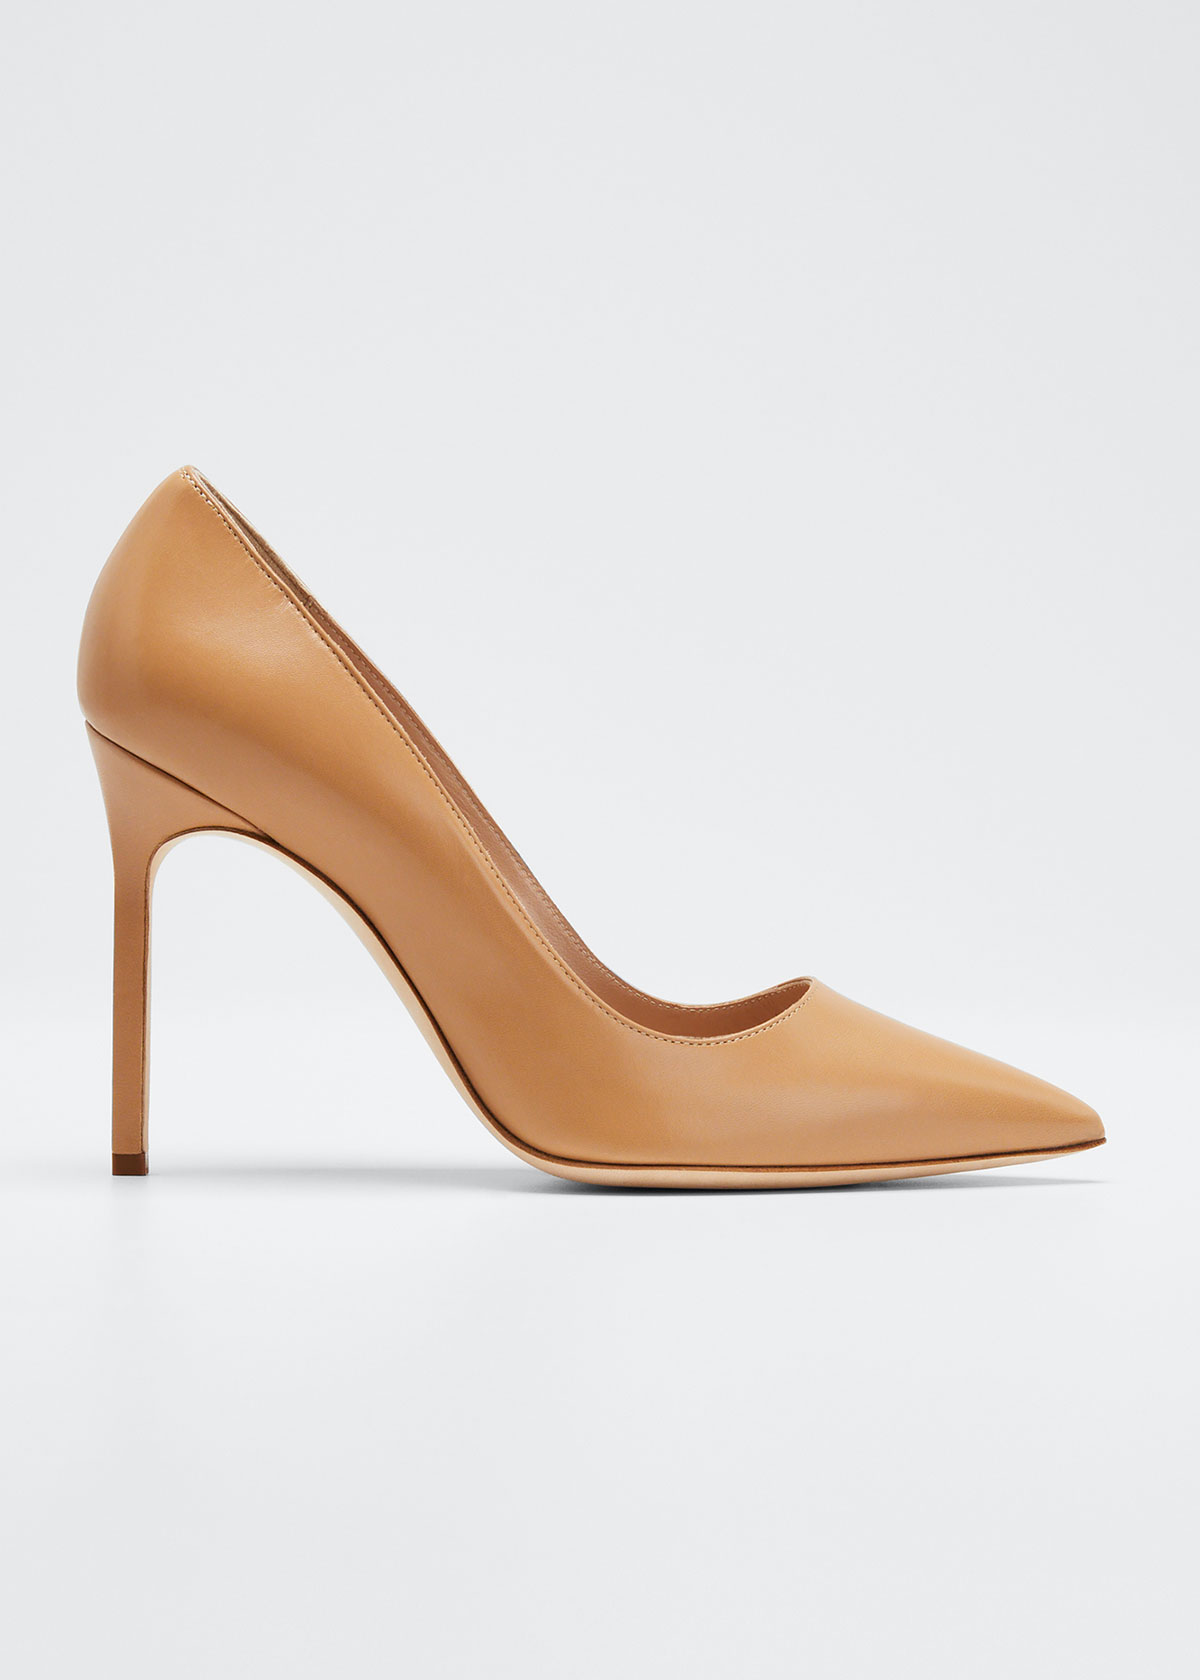 Manolo Blahnik Bb Leather 105Mm Pumps In Light Beige